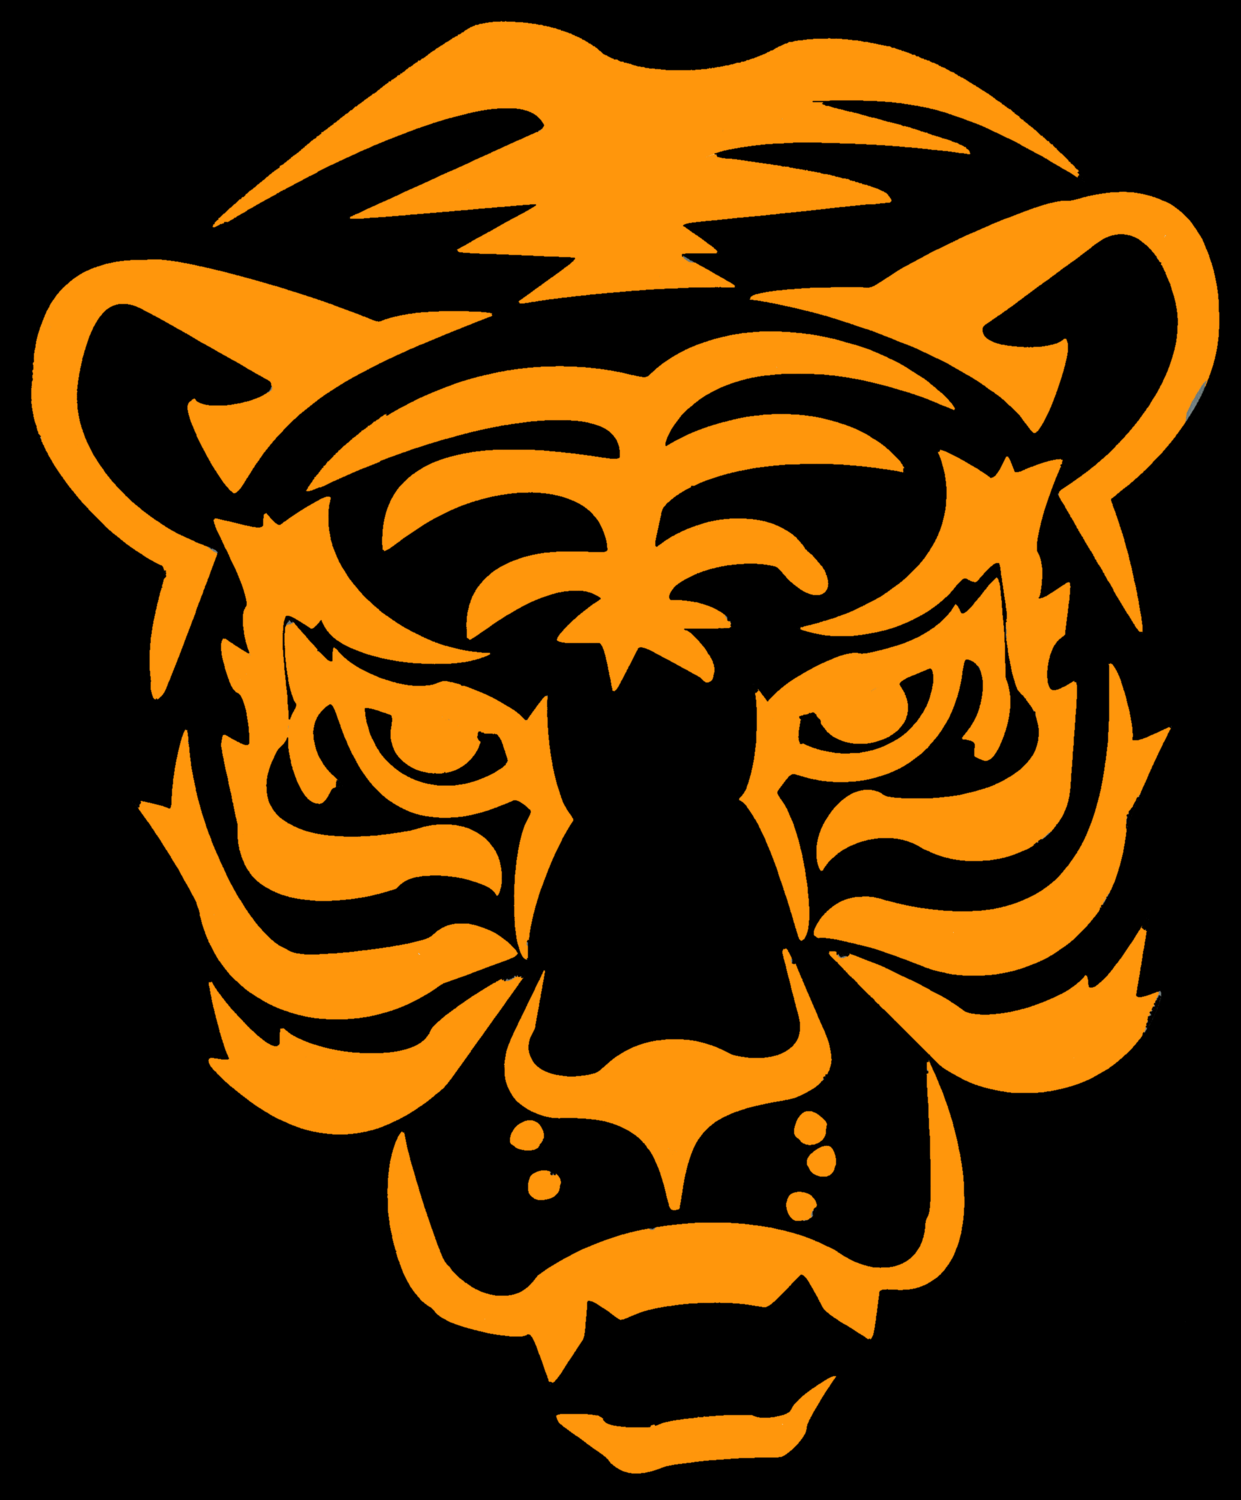 Tiger Black Design Heat Transfer Vinyl ready to put on T-Shirt